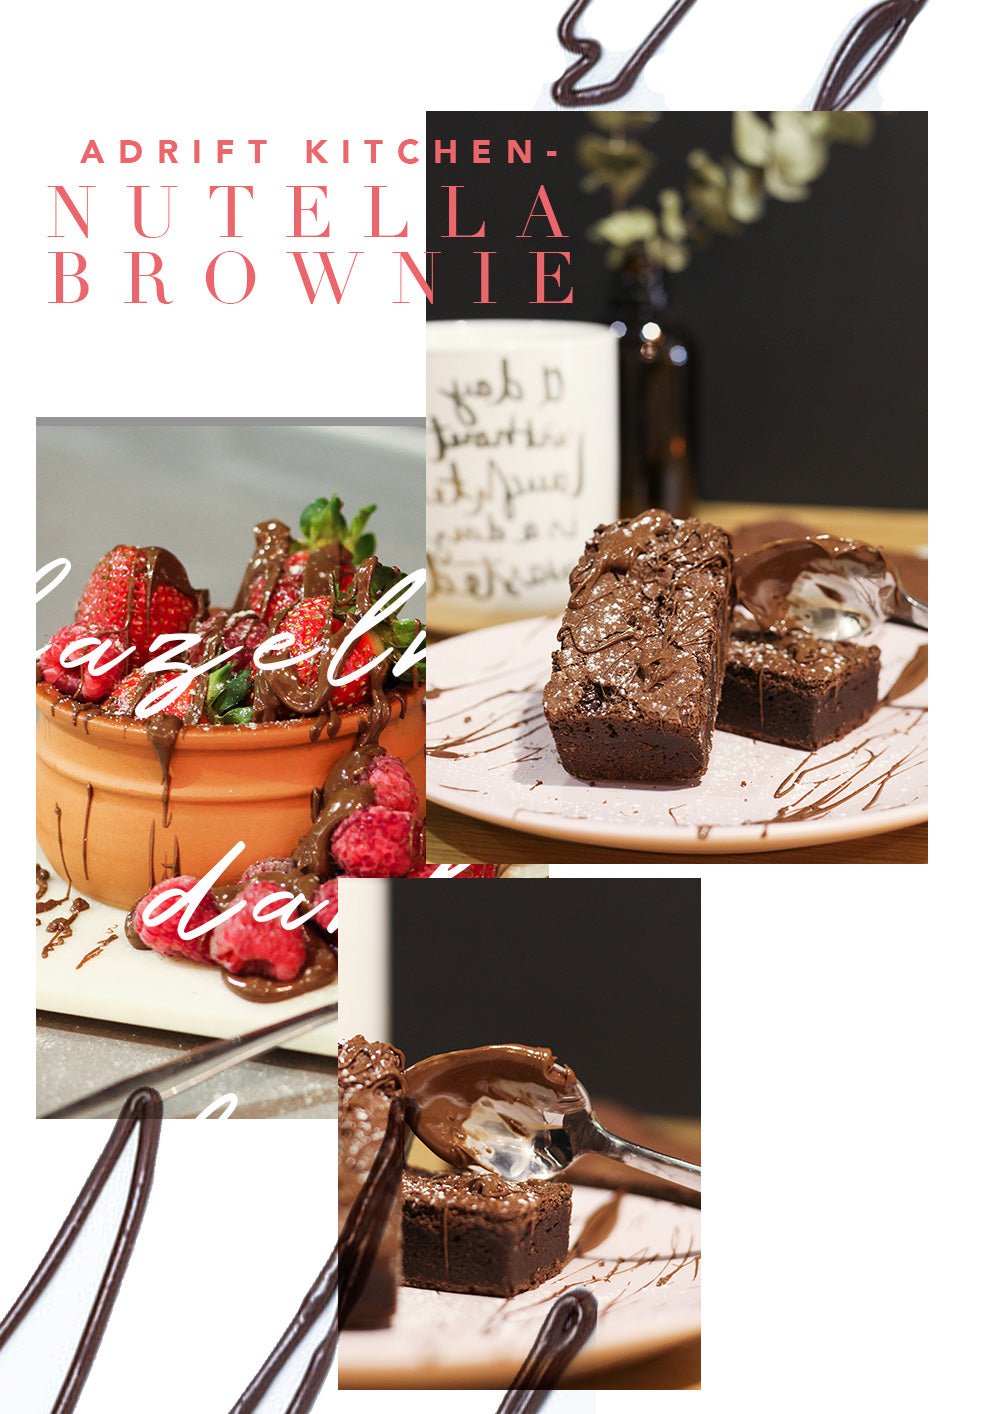 Nutella Brownie Collage